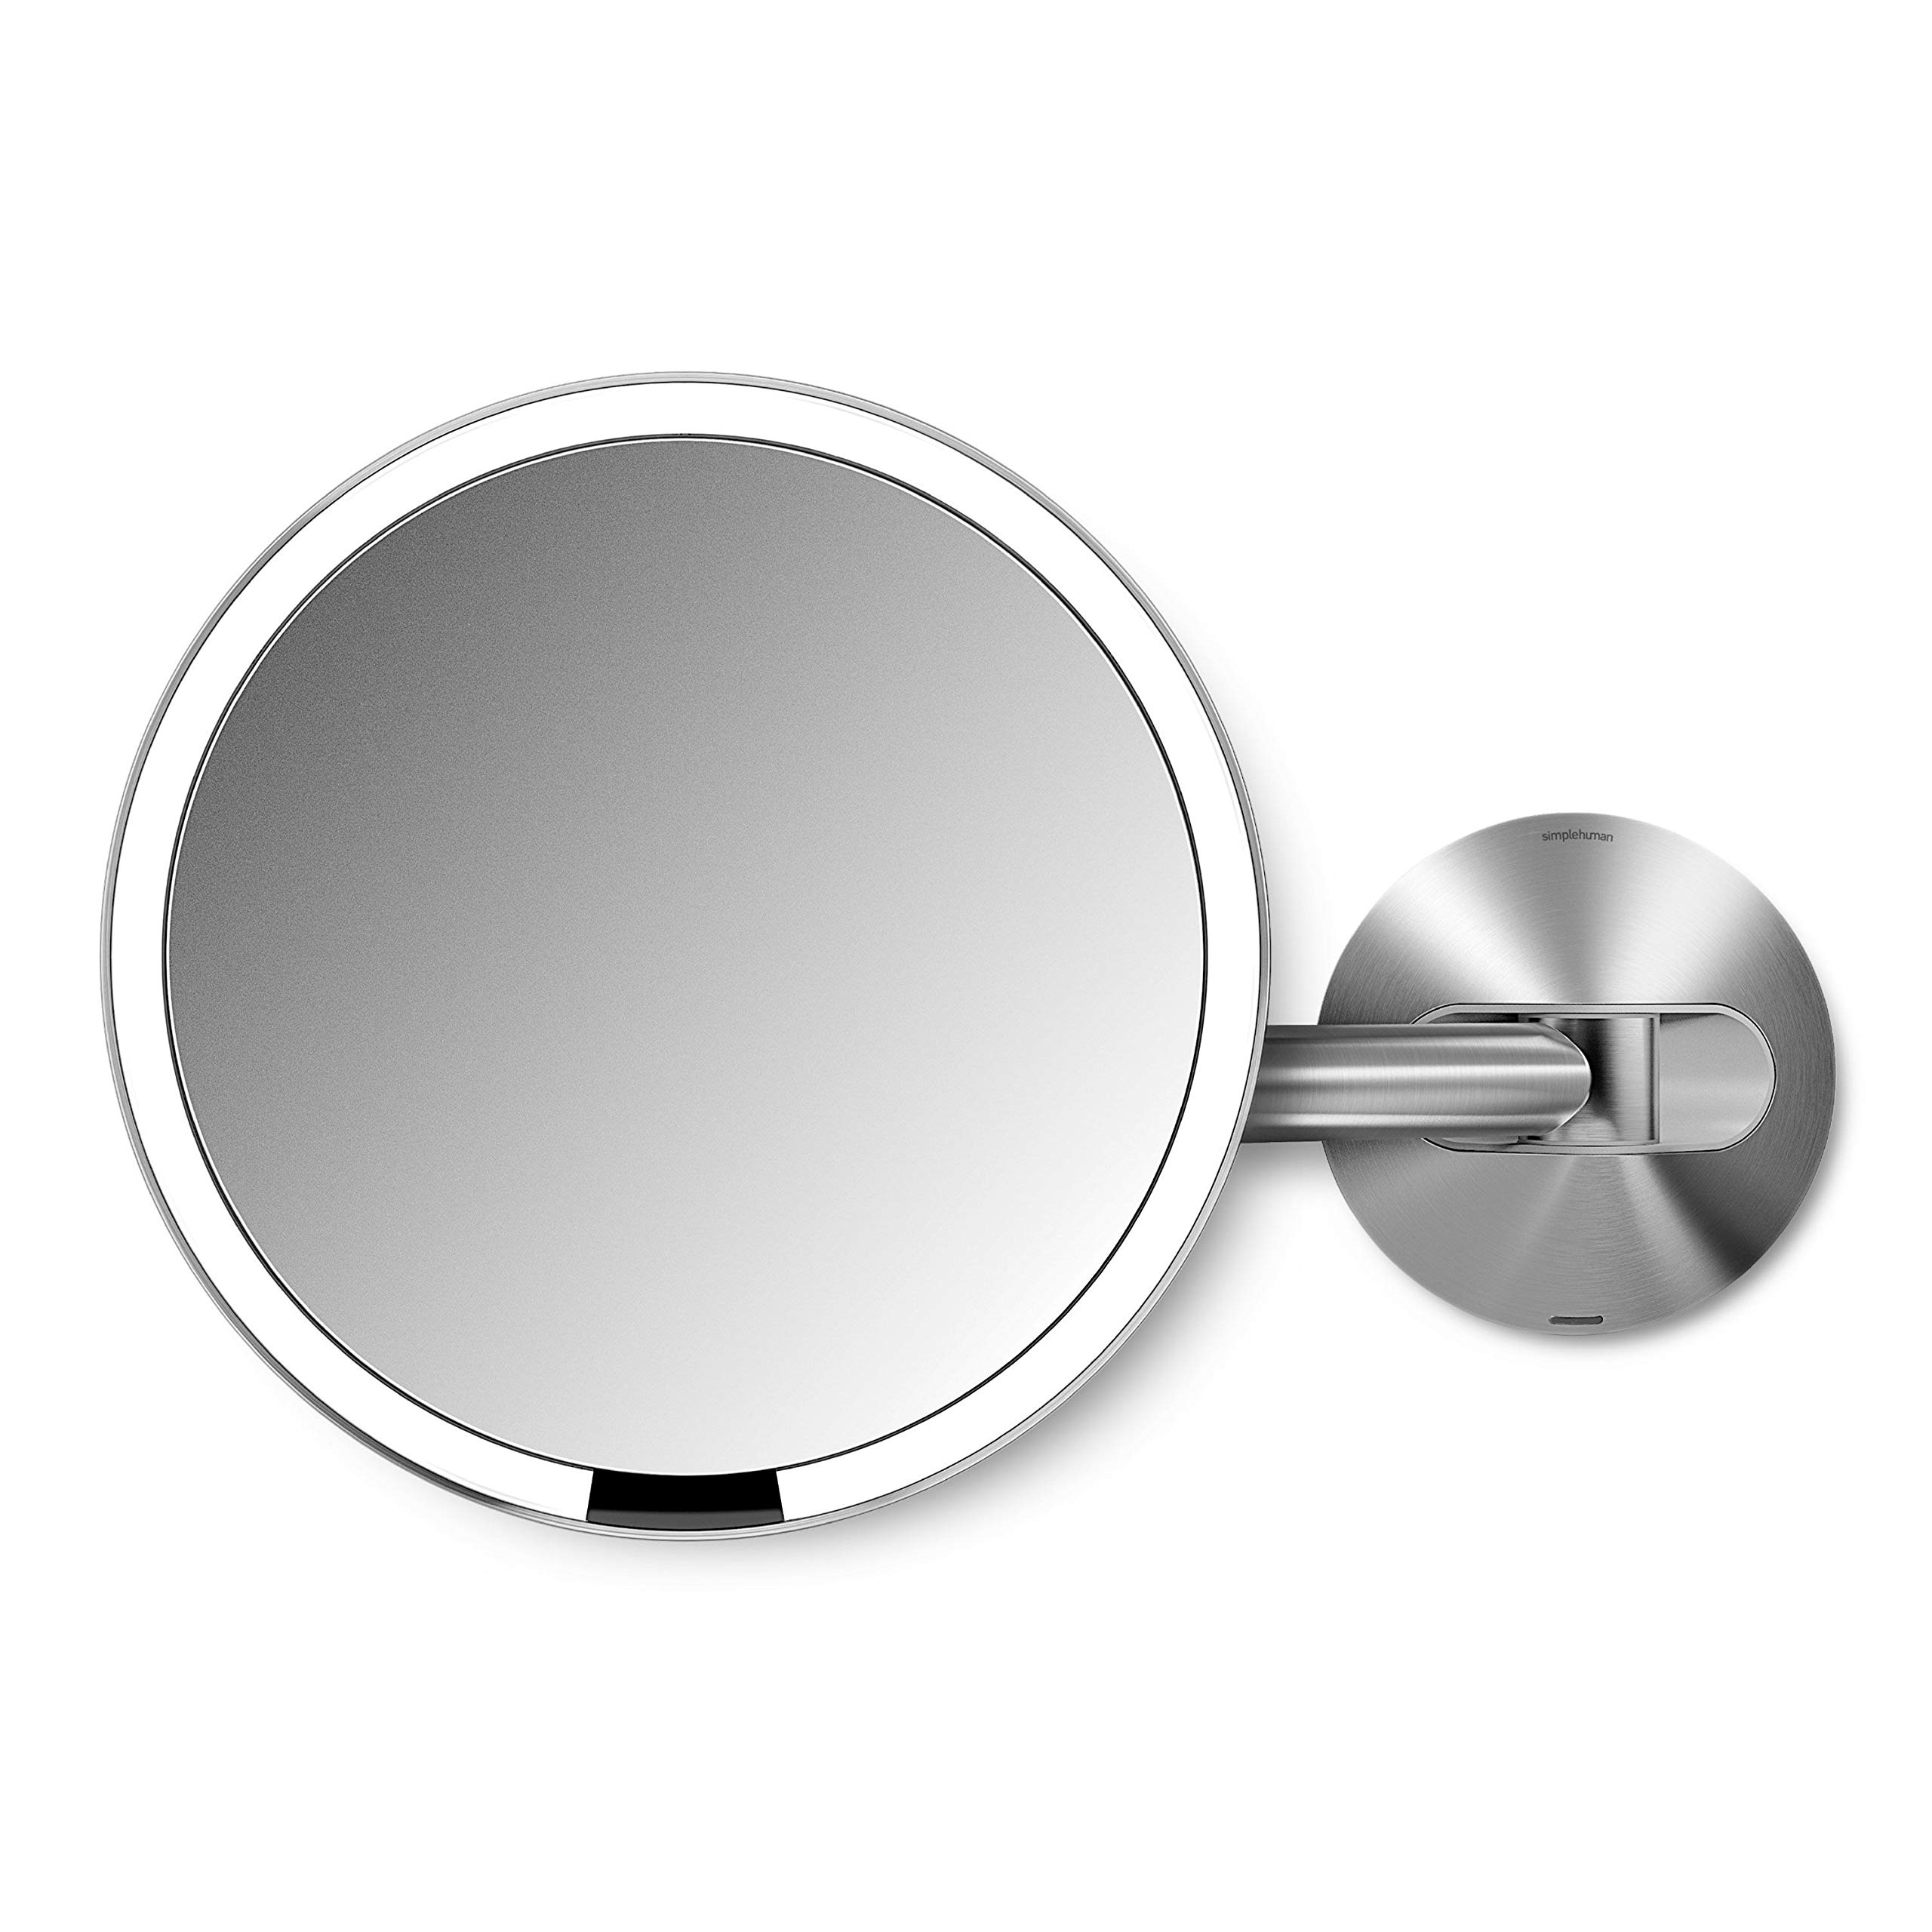 simplehuman Sensor Lighted Makeup Vanity Mirror 8'' Round Wall Mount, 5x Magnification, Stainless Steel, Rechargeable And Cordless by simplehuman